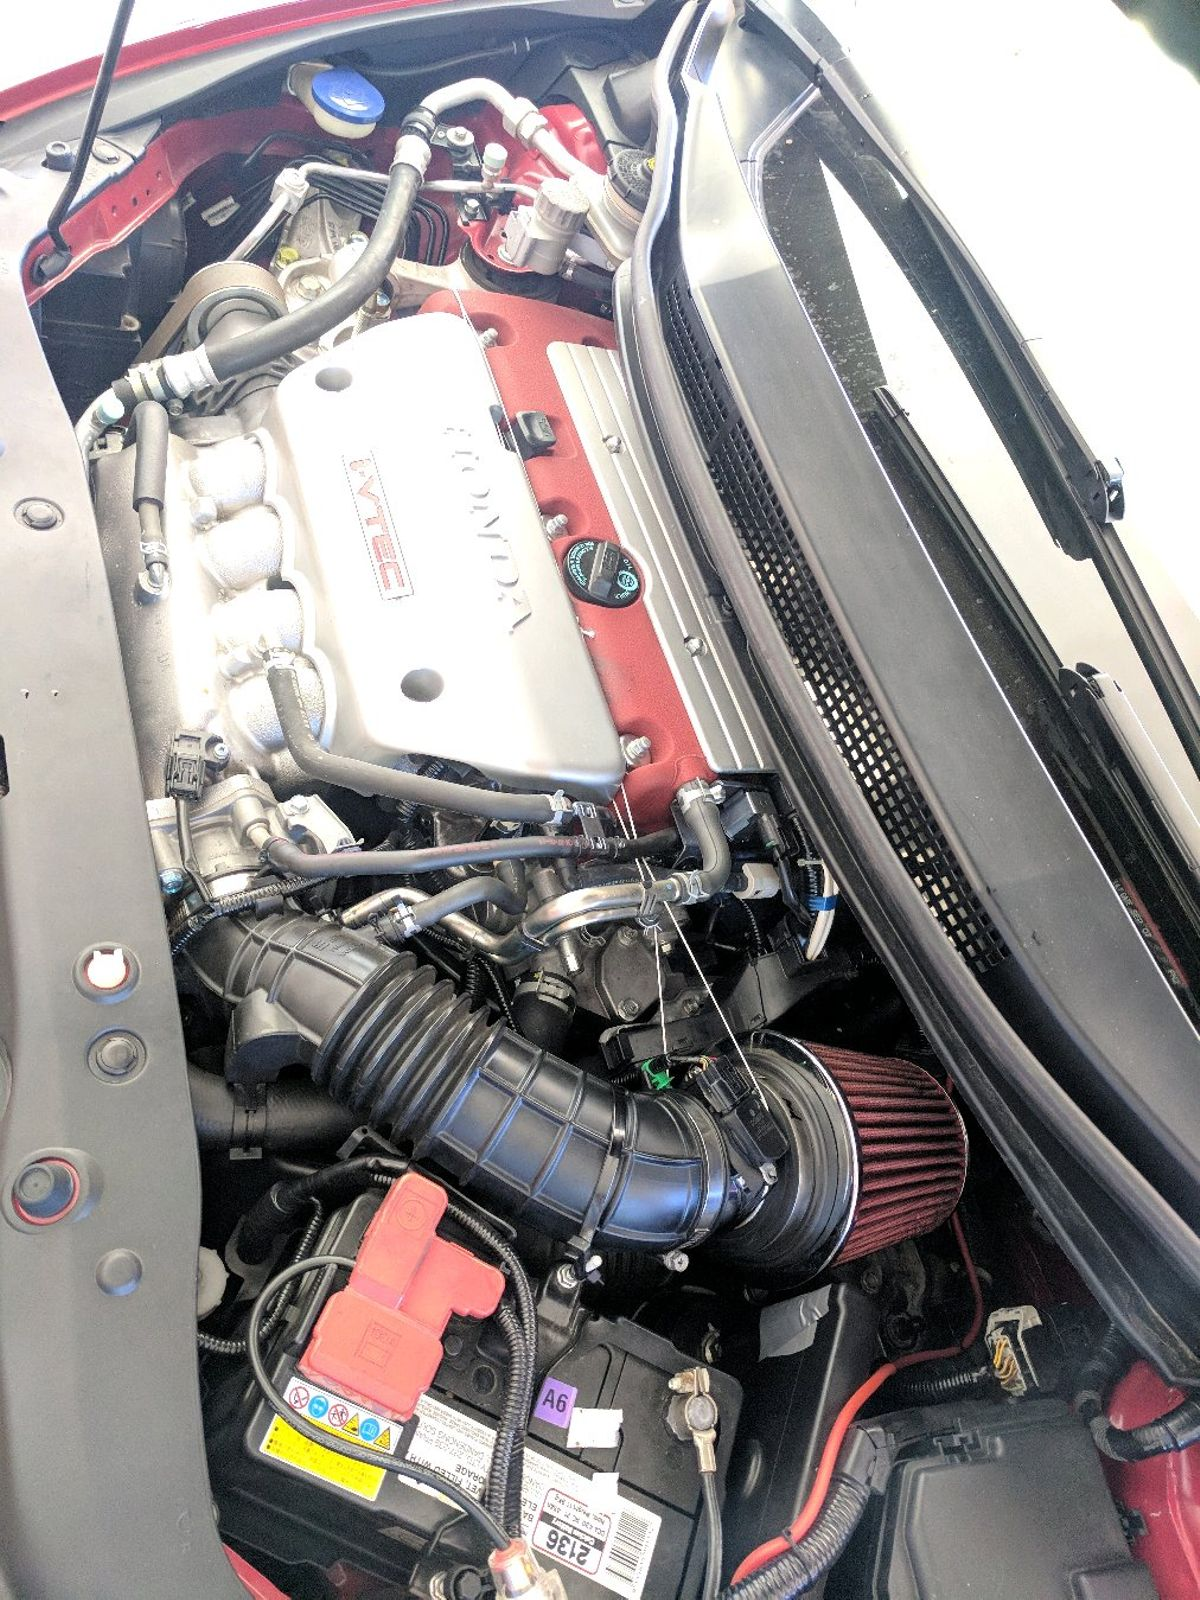 What Is A Hot Air Intake?